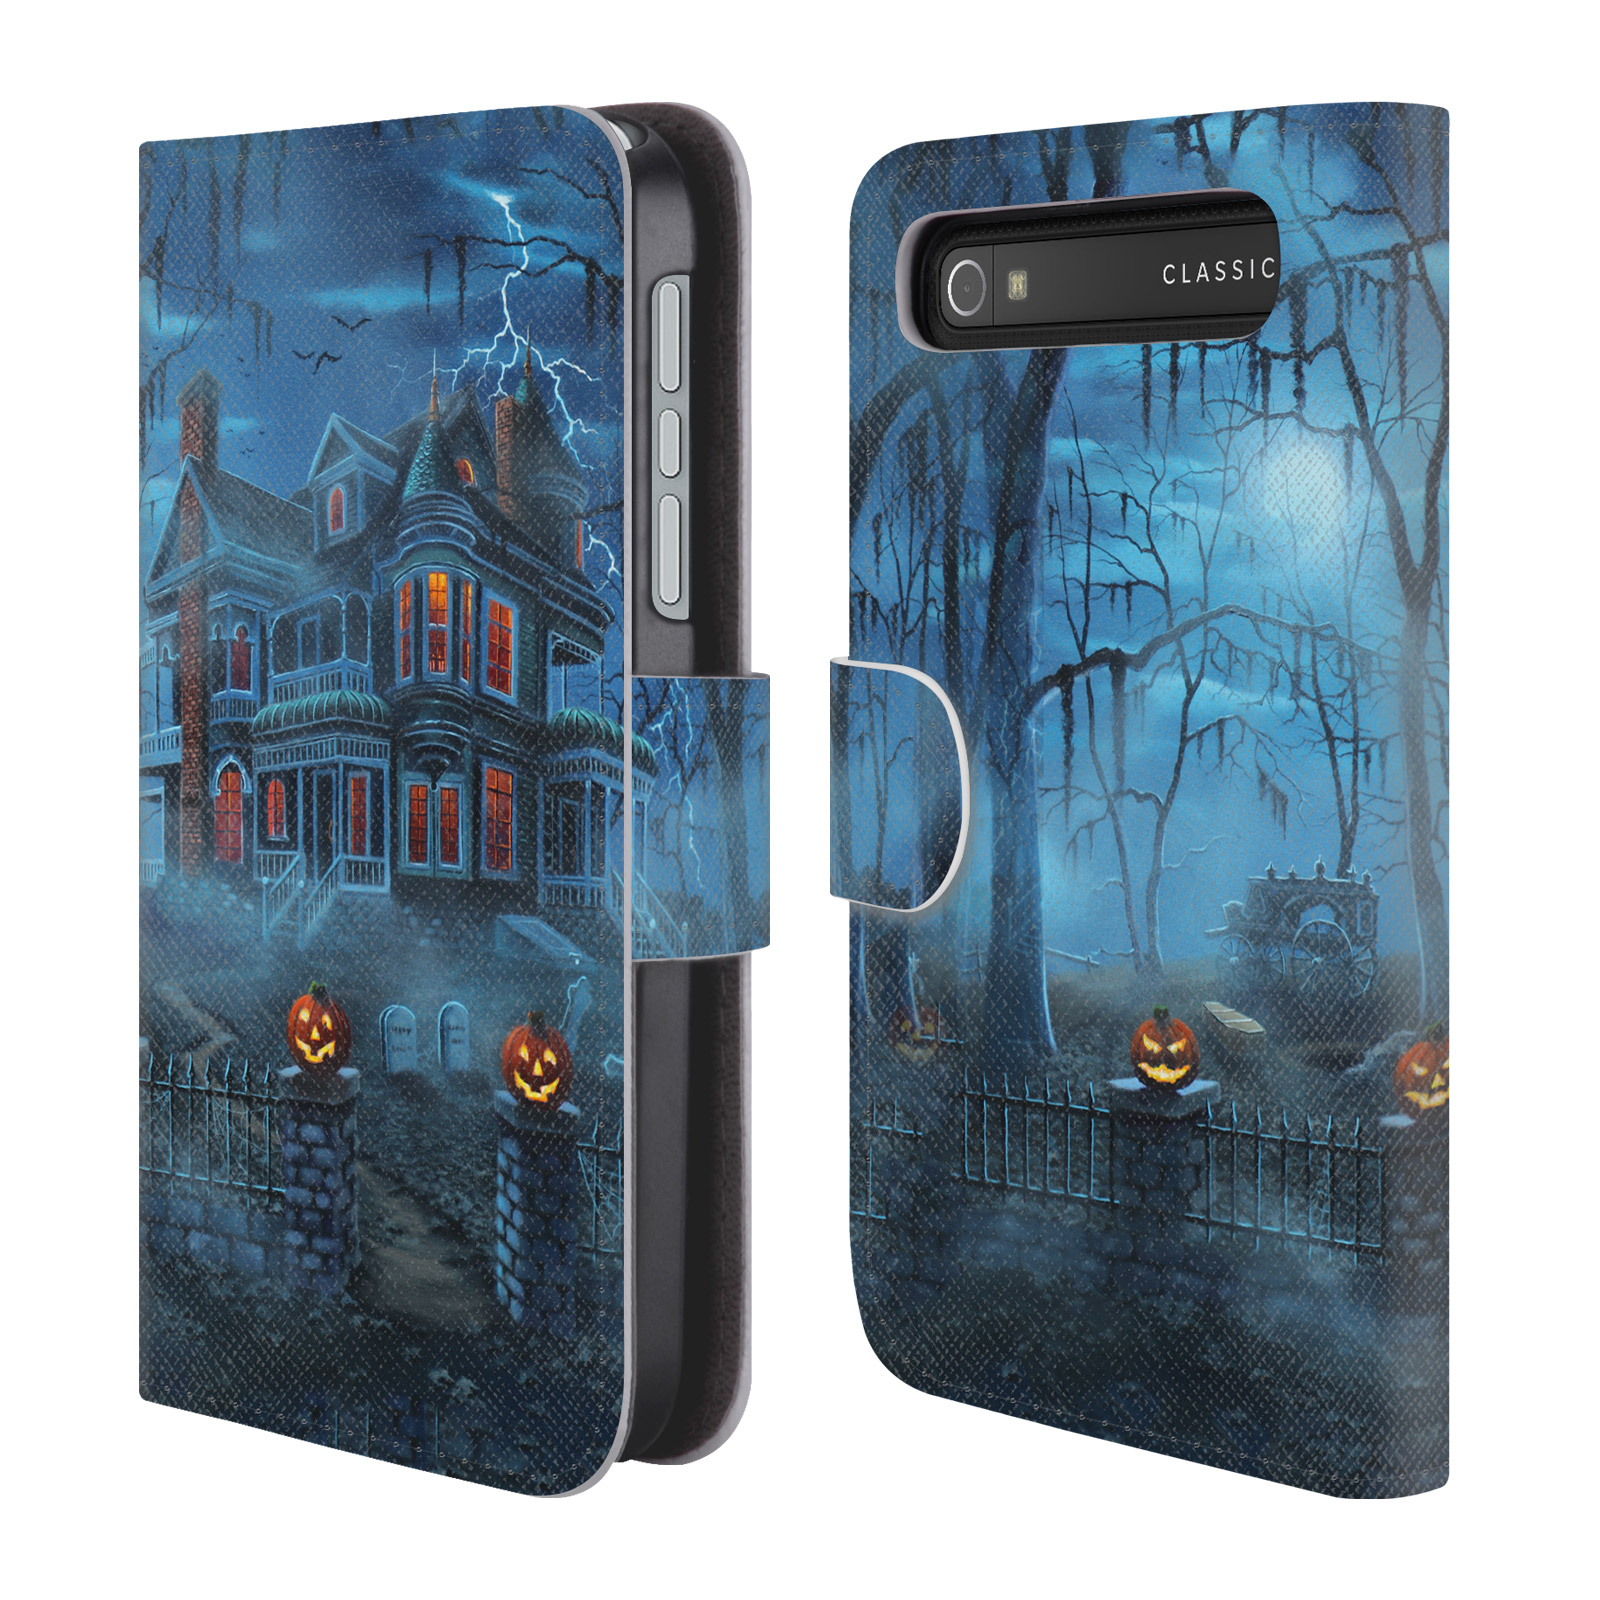 OFFICIAL-GENO-PEOPLES-ART-HALLOWEEN-LEATHER-BOOK-CASE-FOR-BLACKBERRY-ONEPLUS